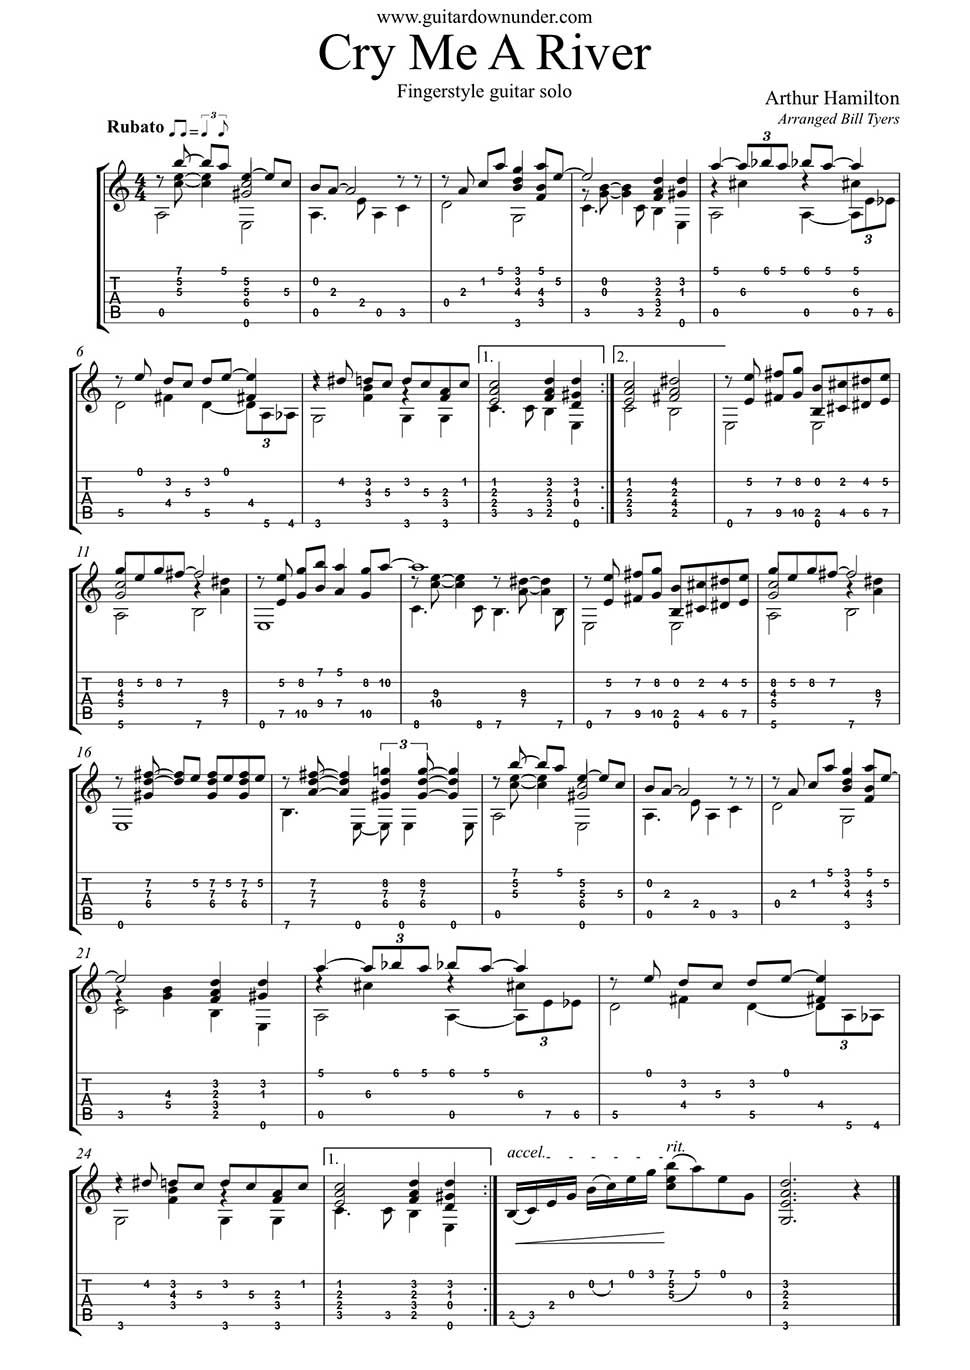 Cry Me A River Arranged For Fingerstyle Guitar By Bill Tyers Fingerstyle Guitar Guitar Sheet Music Guitar Tabs Songs